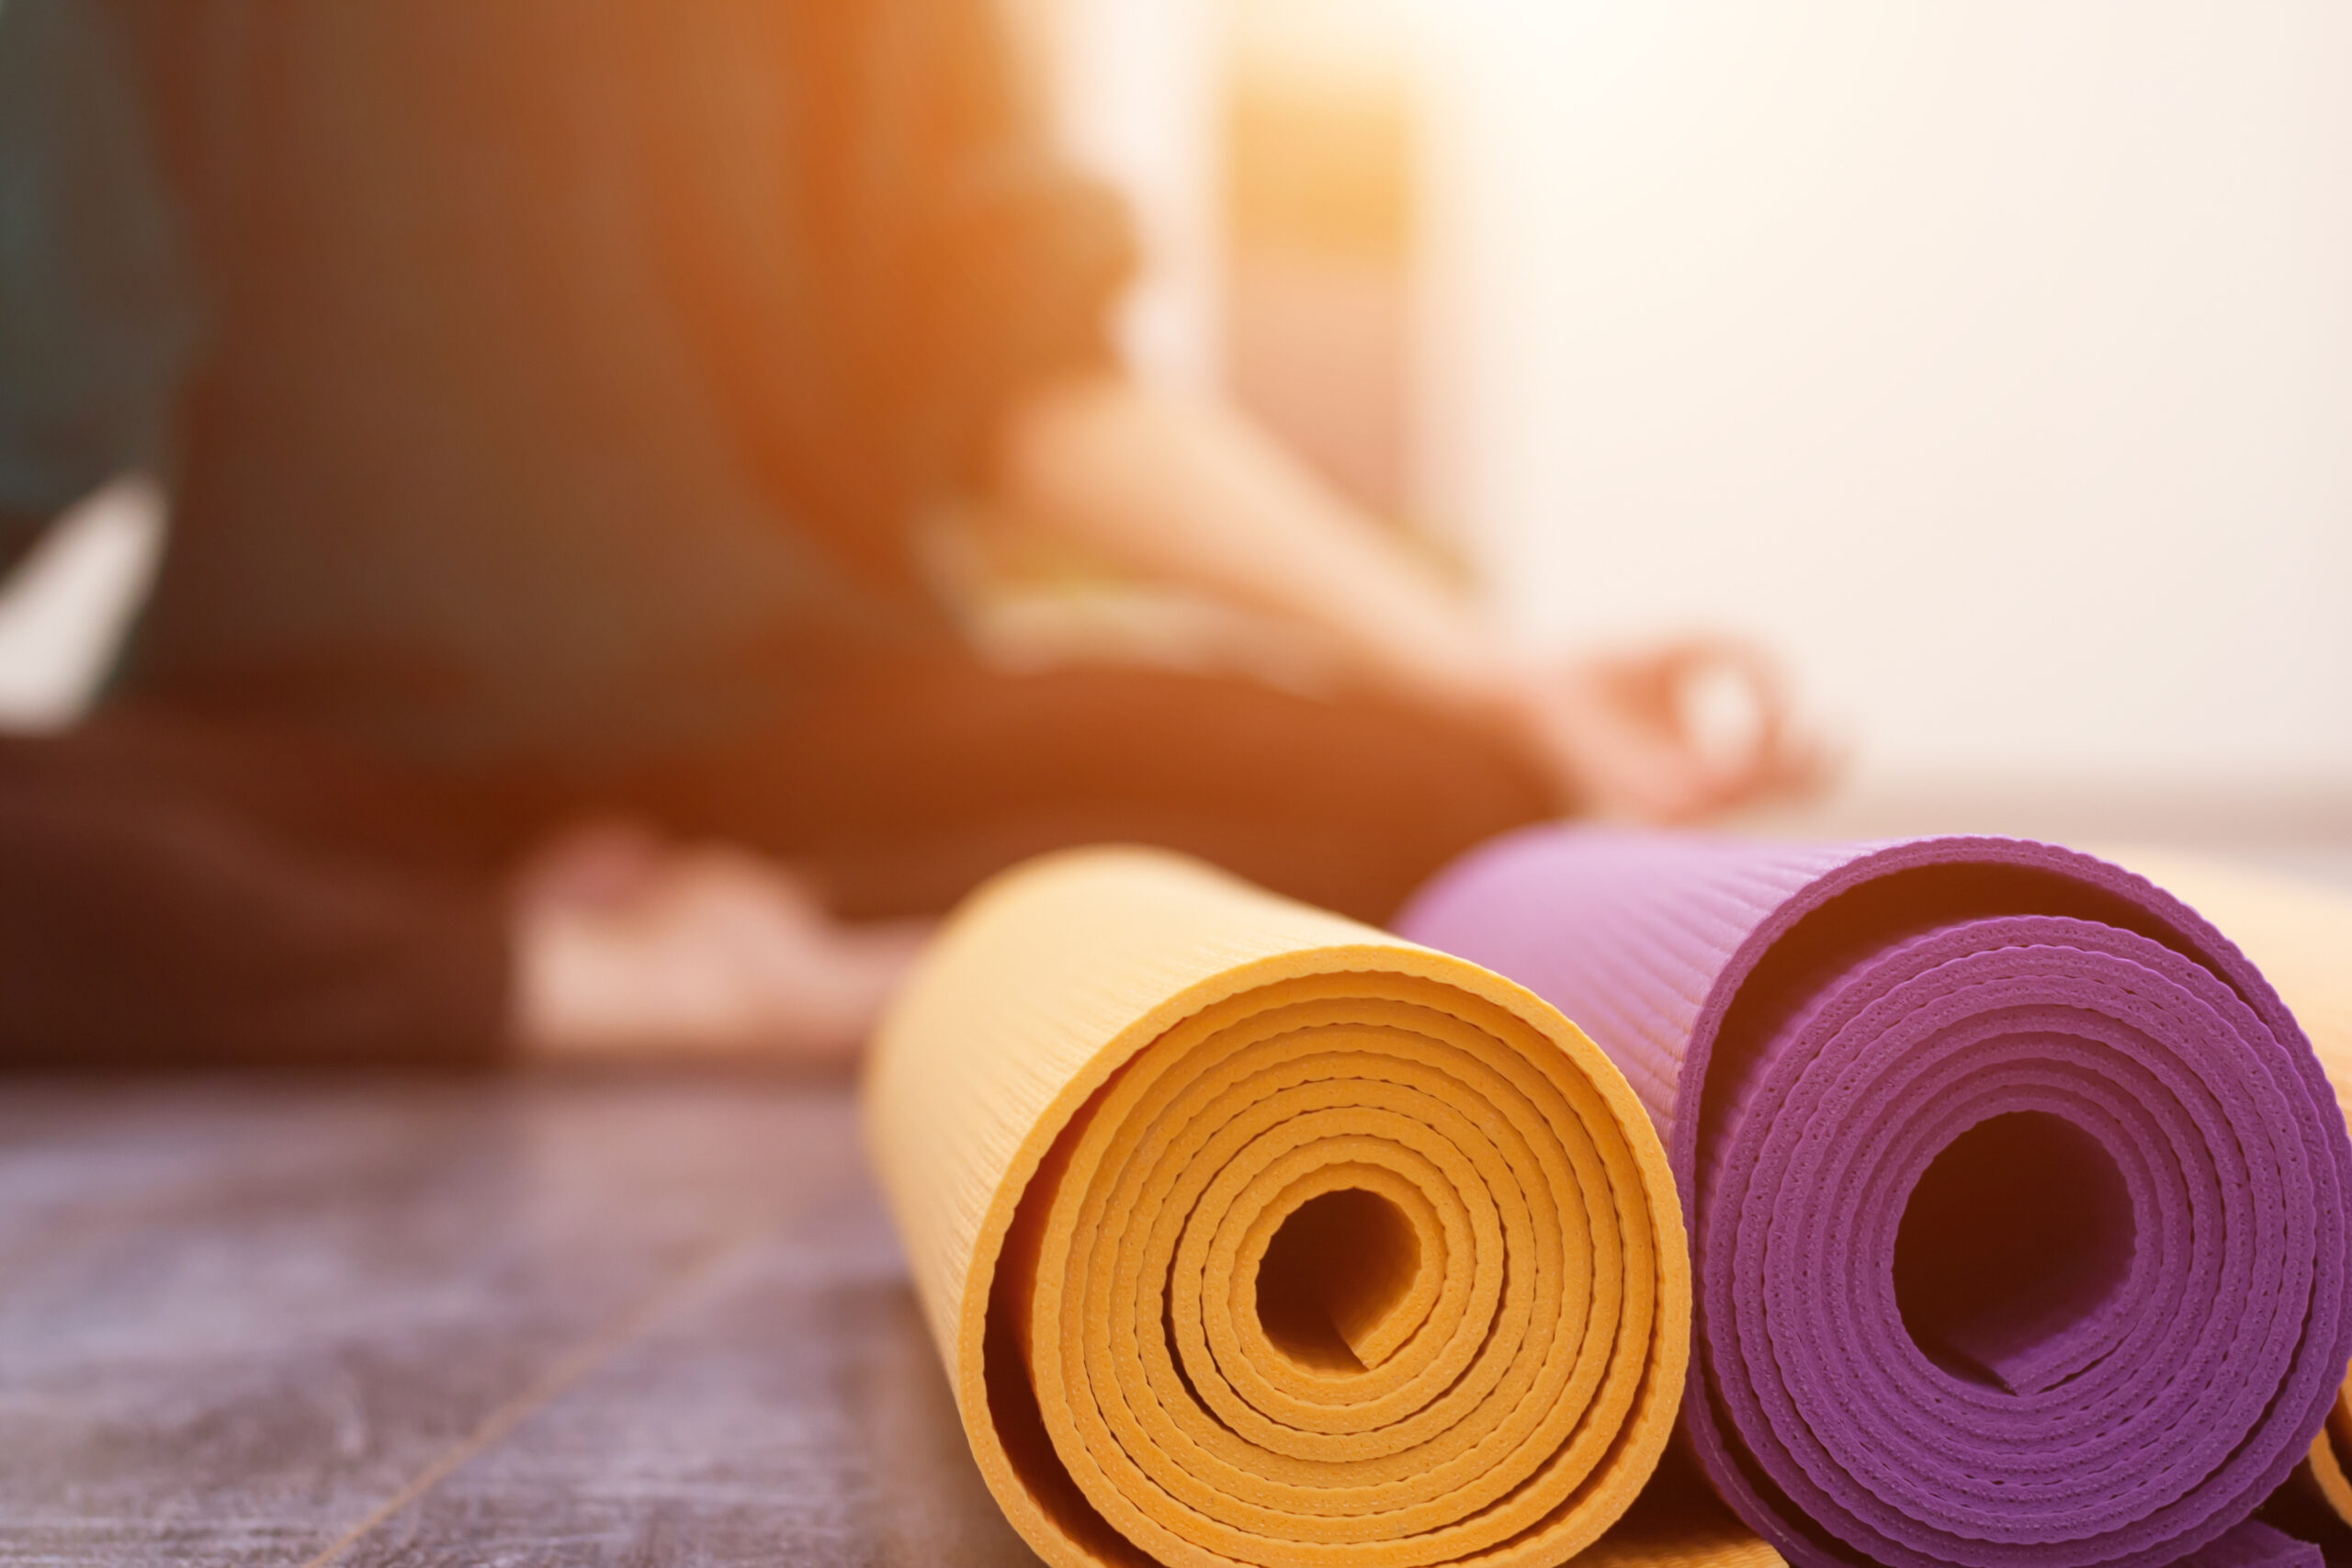 Closeup view of yoga mat and woman sitting in lotus pose on background. Yoga exercising in gym